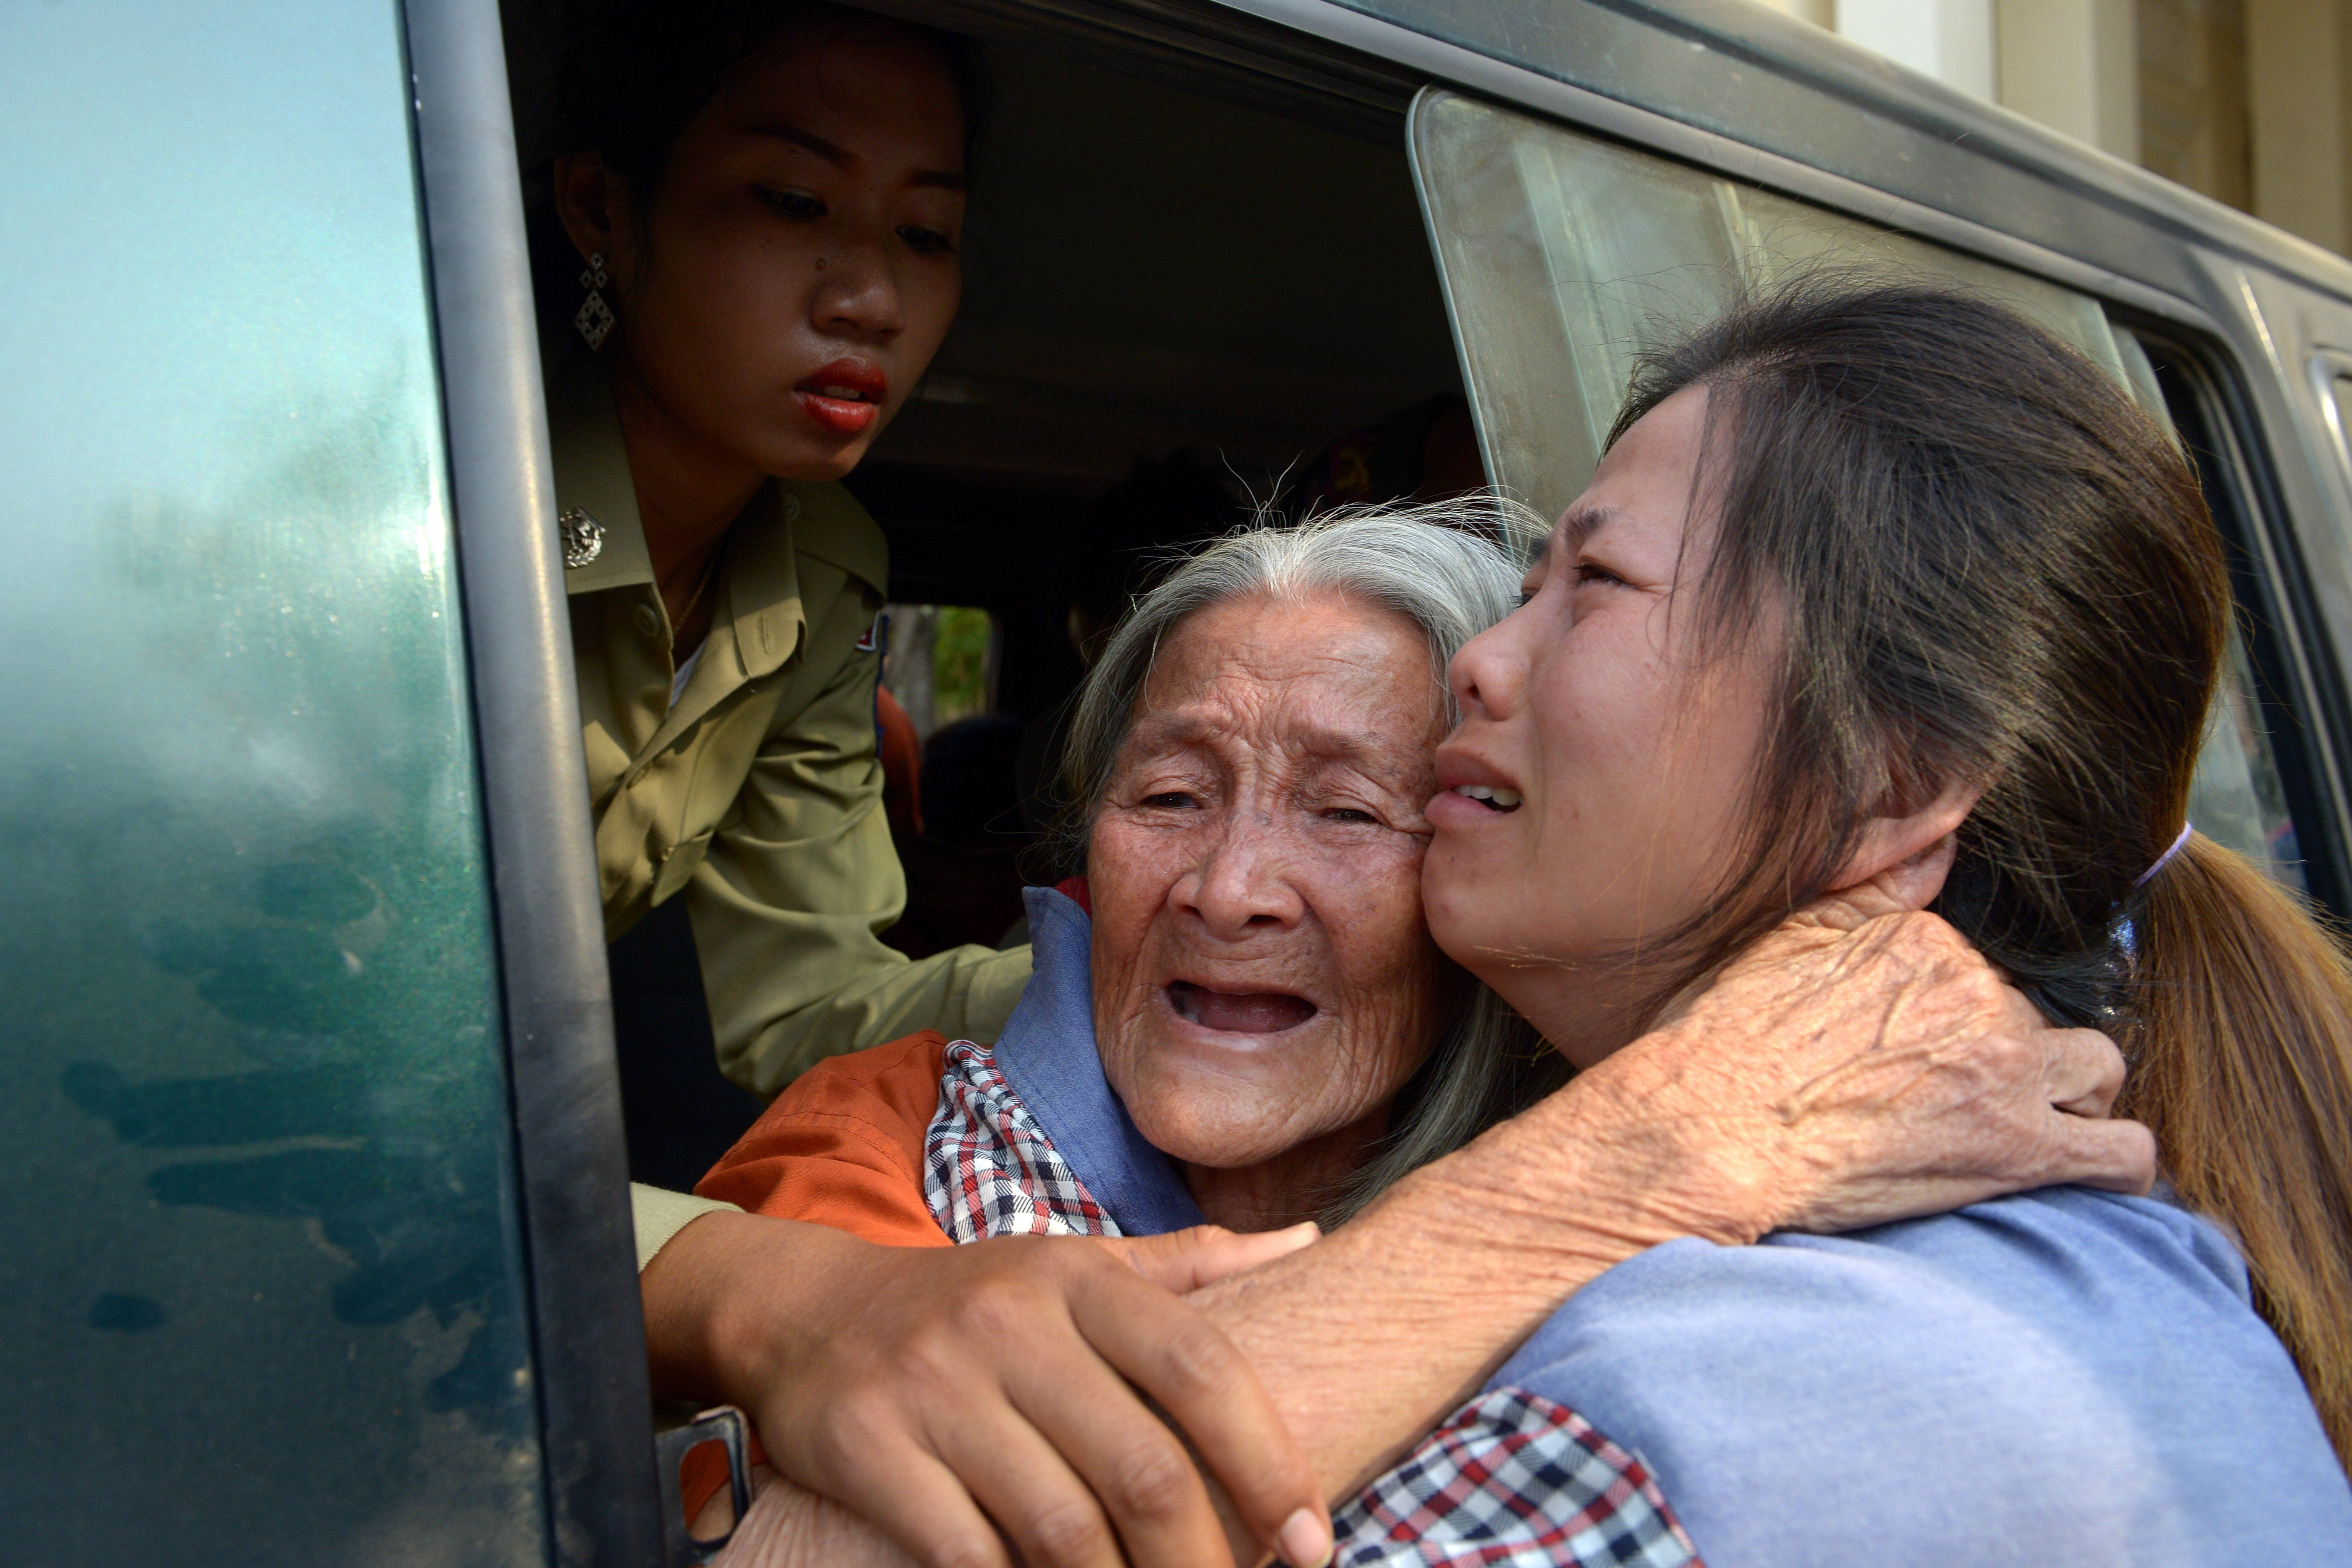 <p>Cambodian land rights activist Nget Khun hugs her daughter through a window of a prison car before a court hearing in Phenom Penh on Jan. 26, 2015. Khun was arrested for protesting against evictions connected to a World Bank-financed land management program.</p>